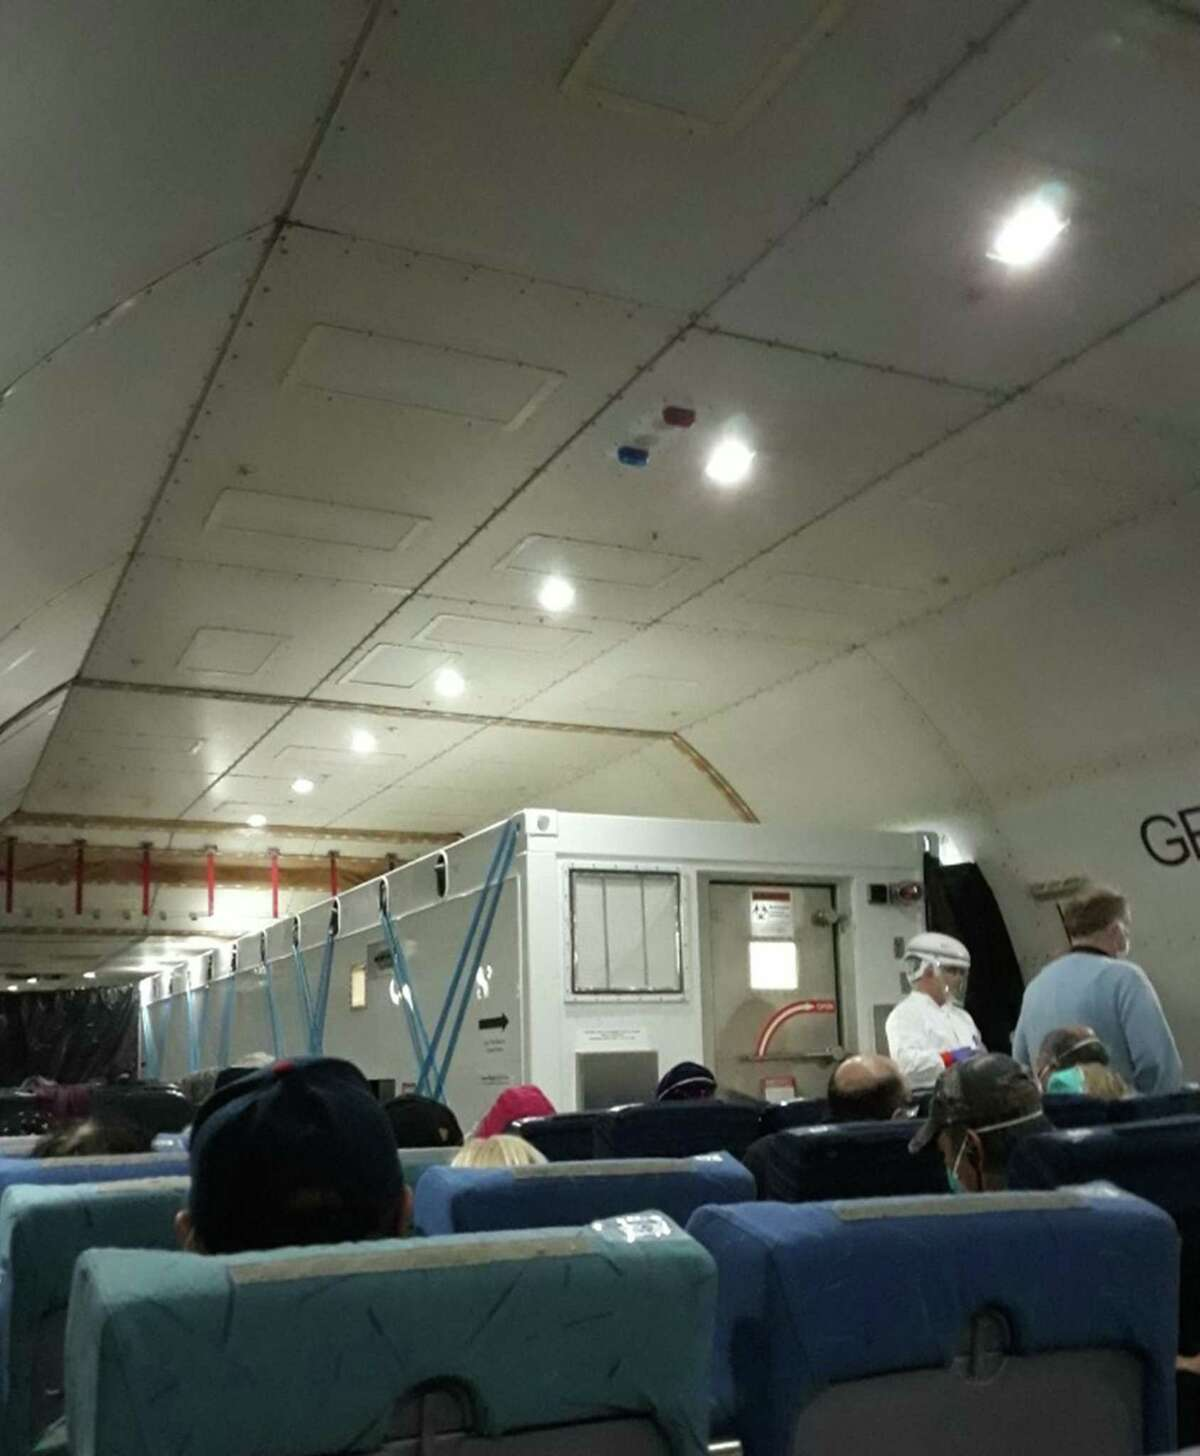 Americans evacuated from the Diamond Princess cruise ship in Japan were flown back on private cargo charter planes featuring isolation chambers for any passengers infected with the coronavirus and those exhibiting symptoms during their trip back to the United States.